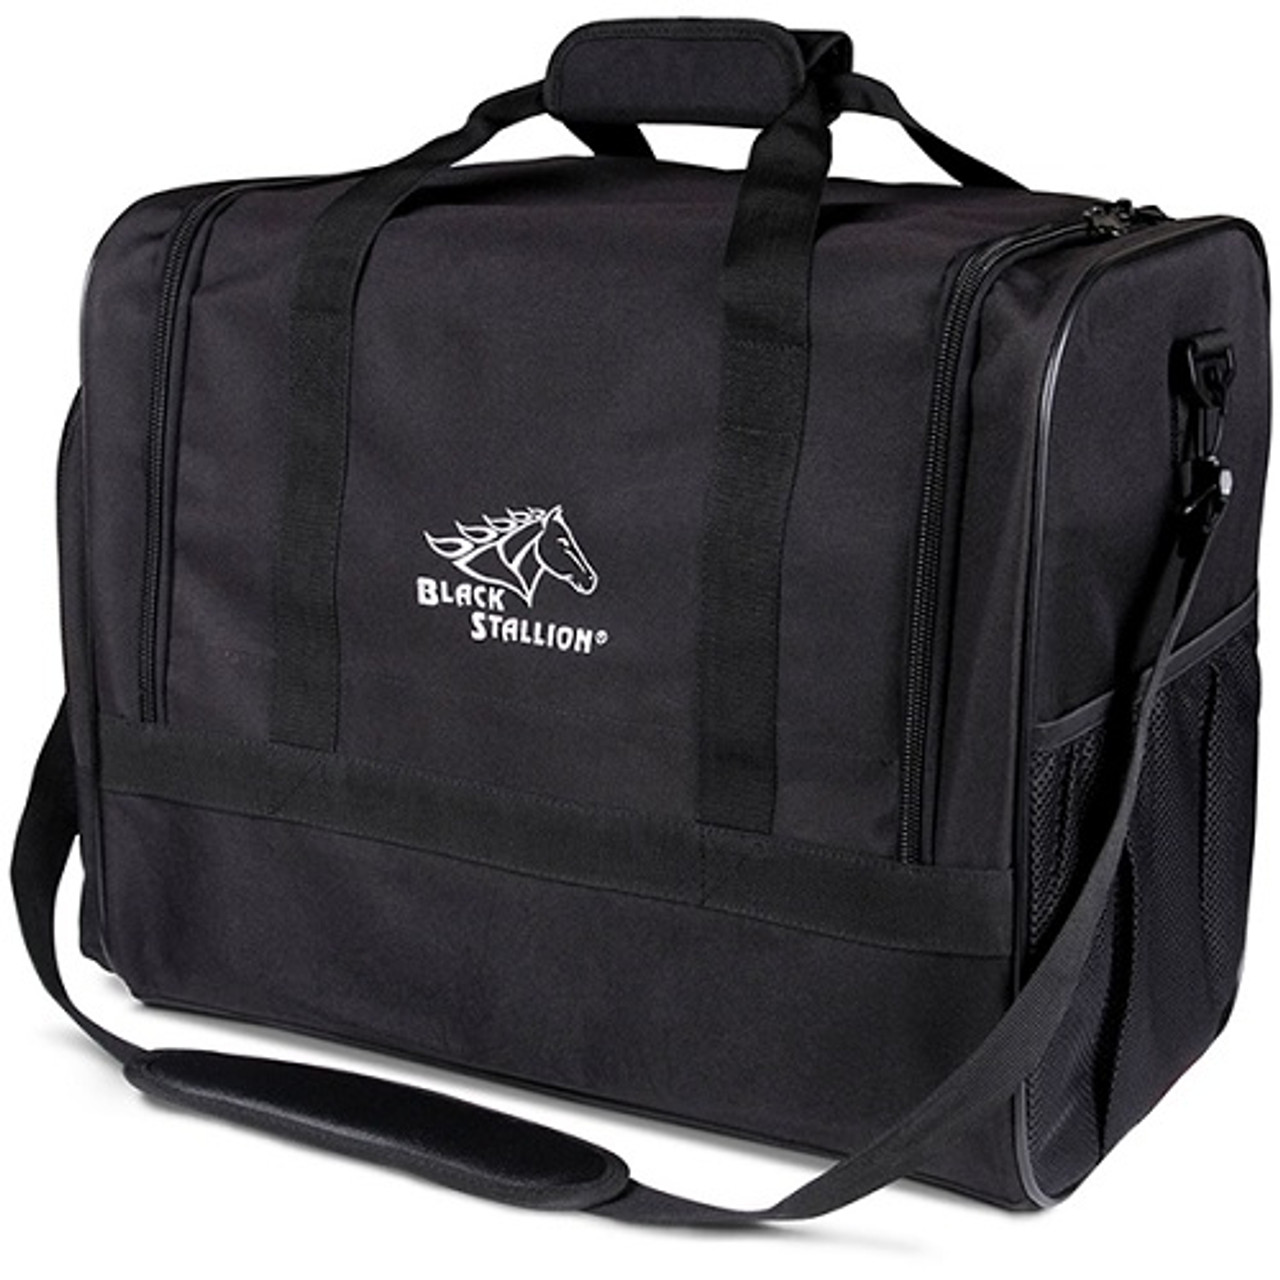 Redesigned with easy-open zippered flap for quick access to gear